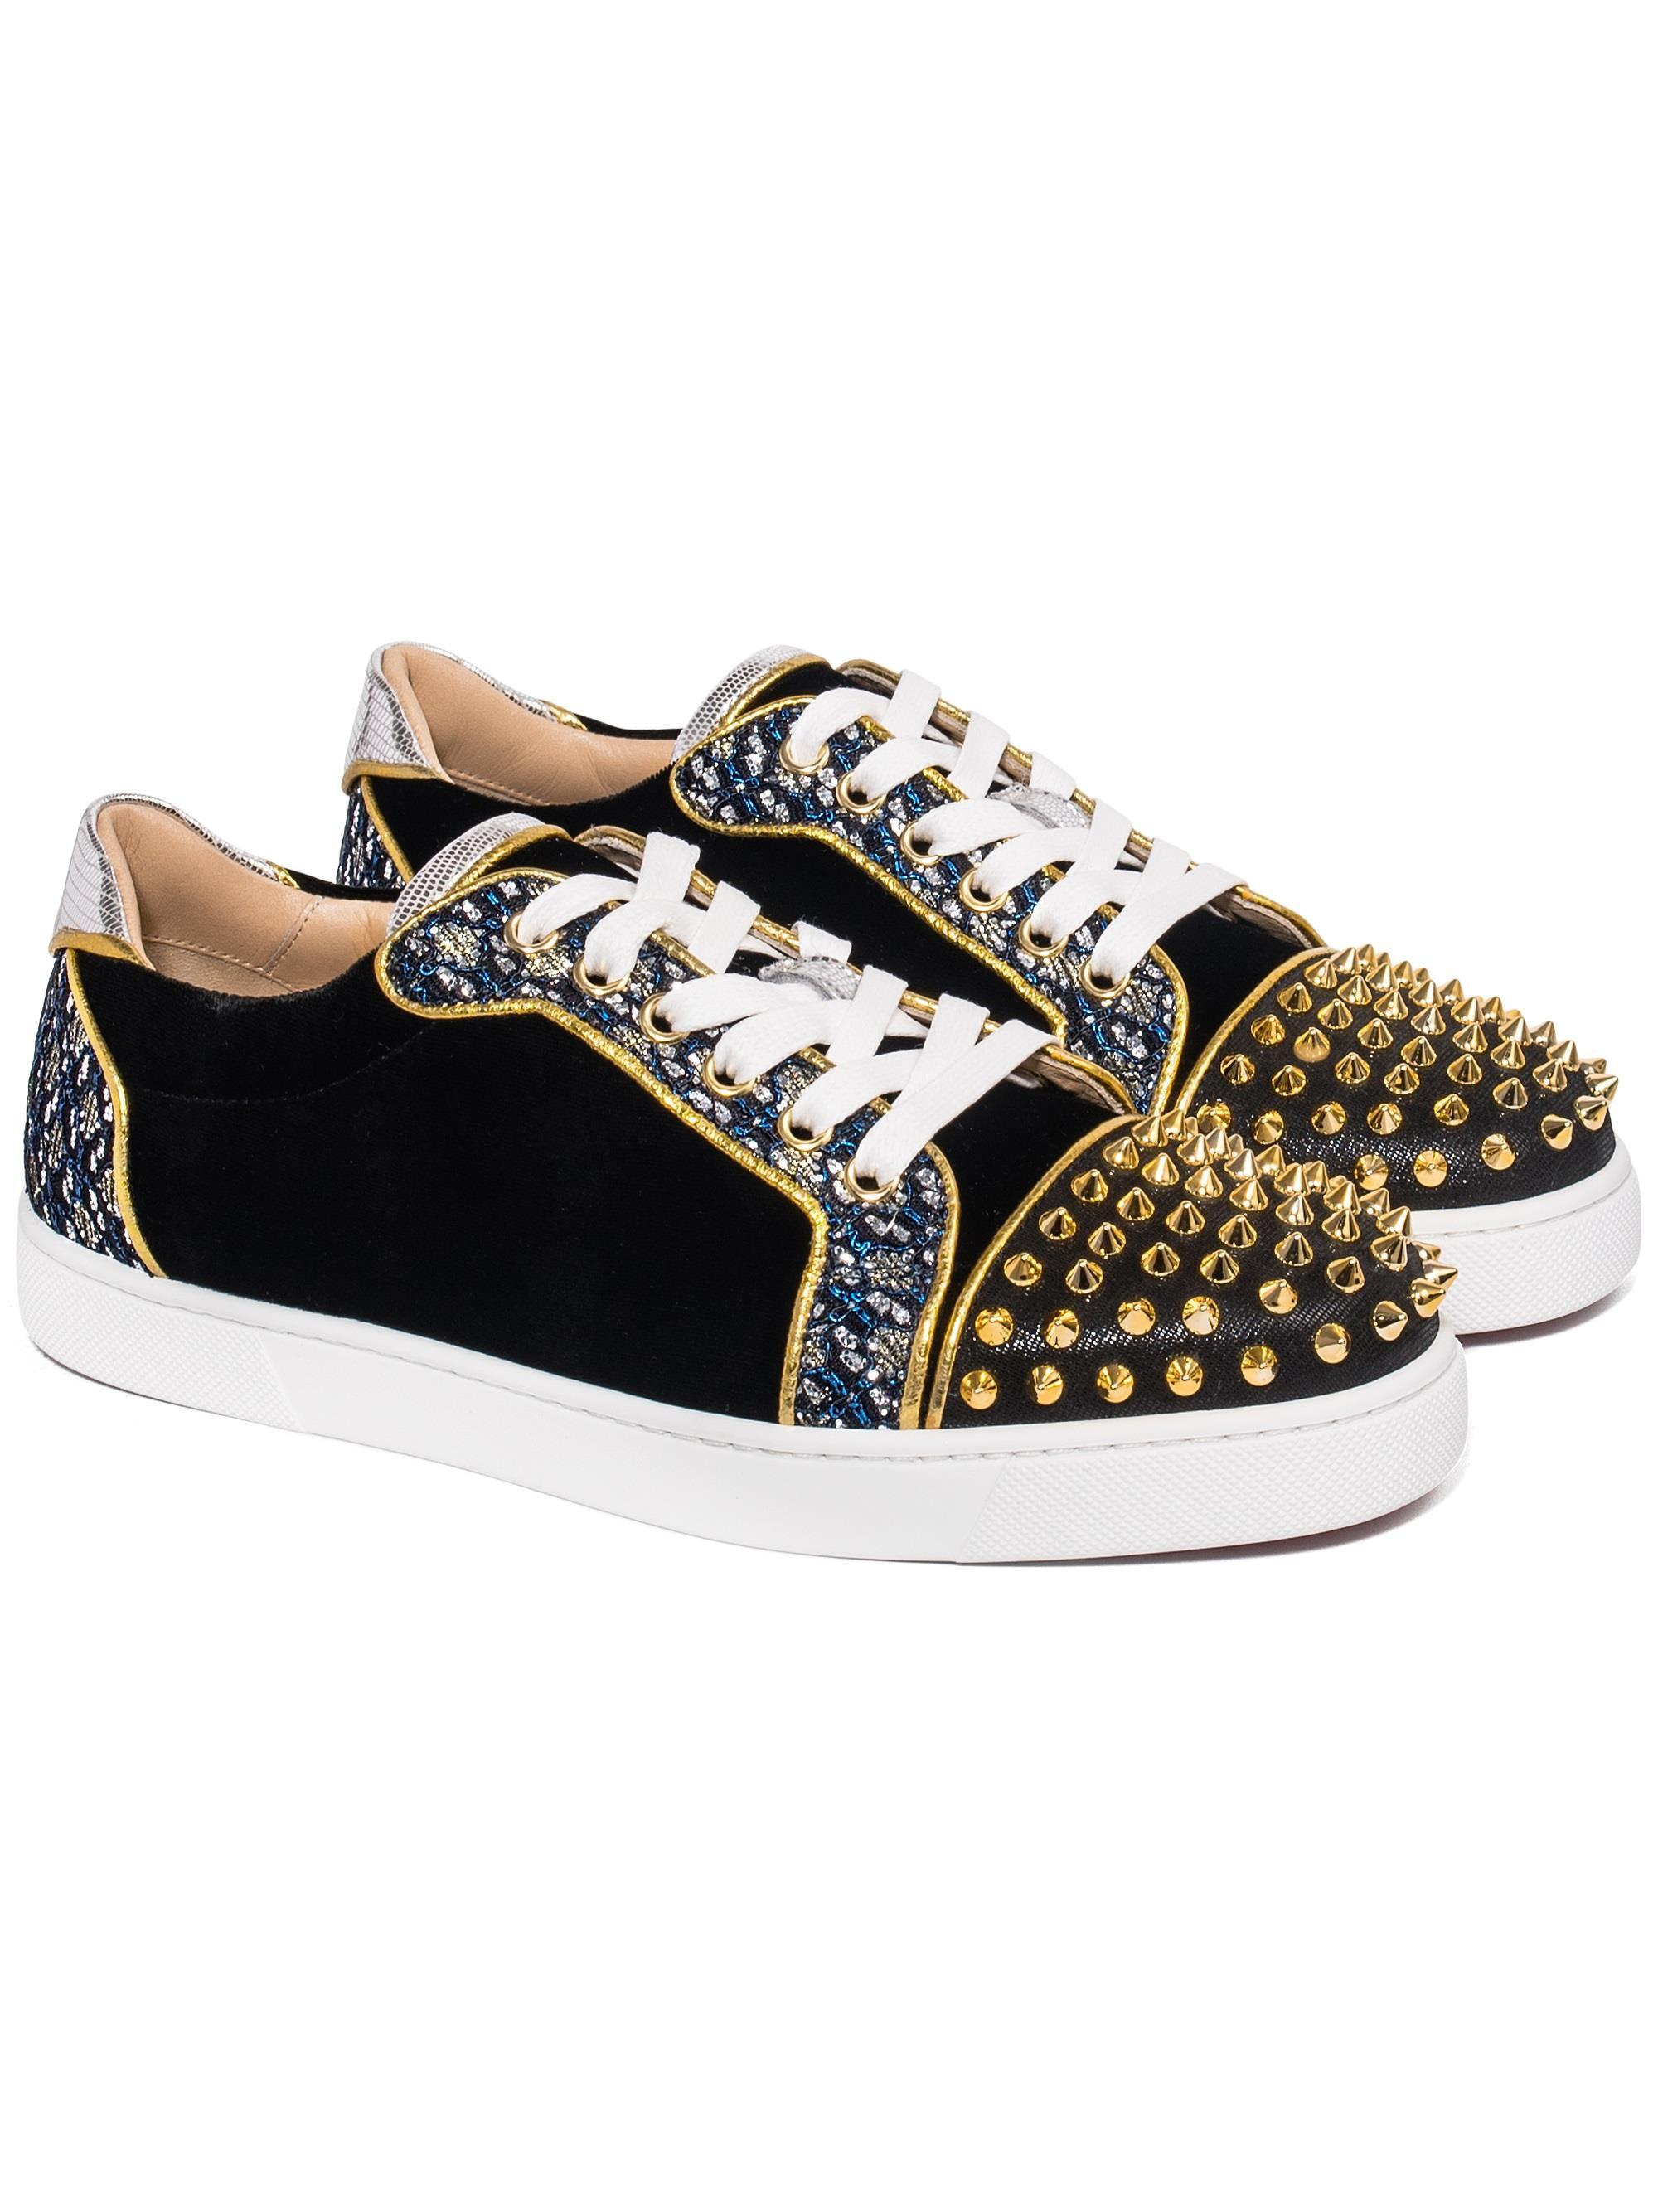 9dd930e8088 Christian Louboutin Black Vieira Spikes Lace-up Low-top Sneakers